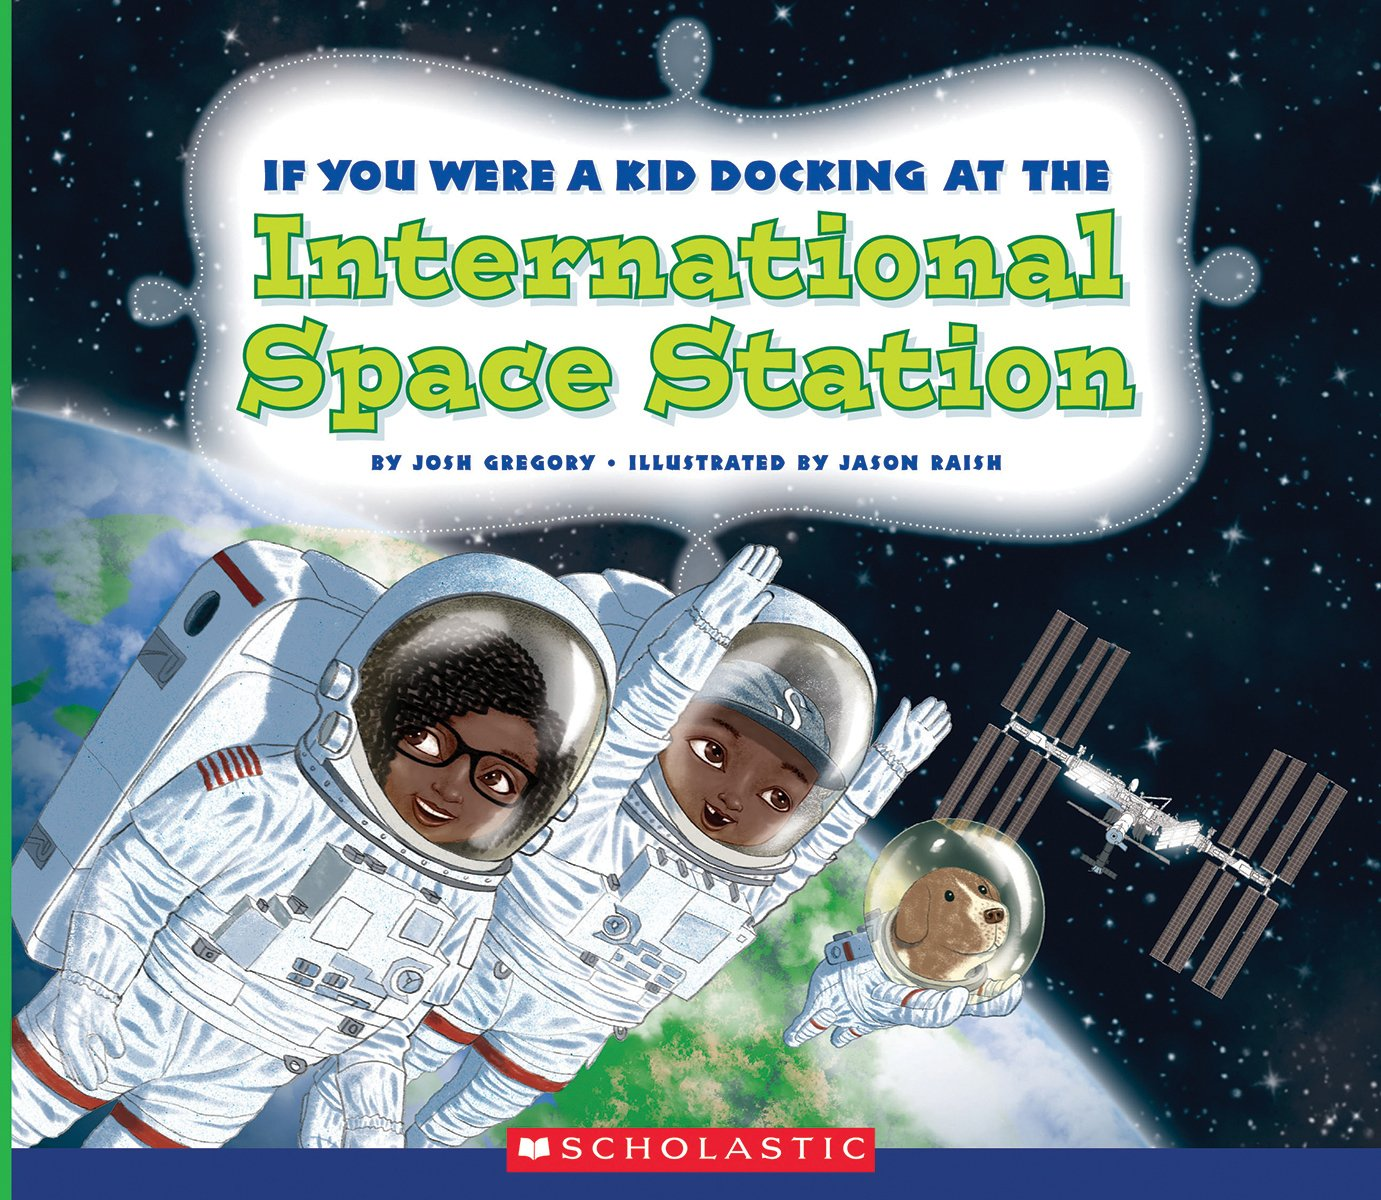 if-you-were-a-kid-docking-at-the-international-space-station